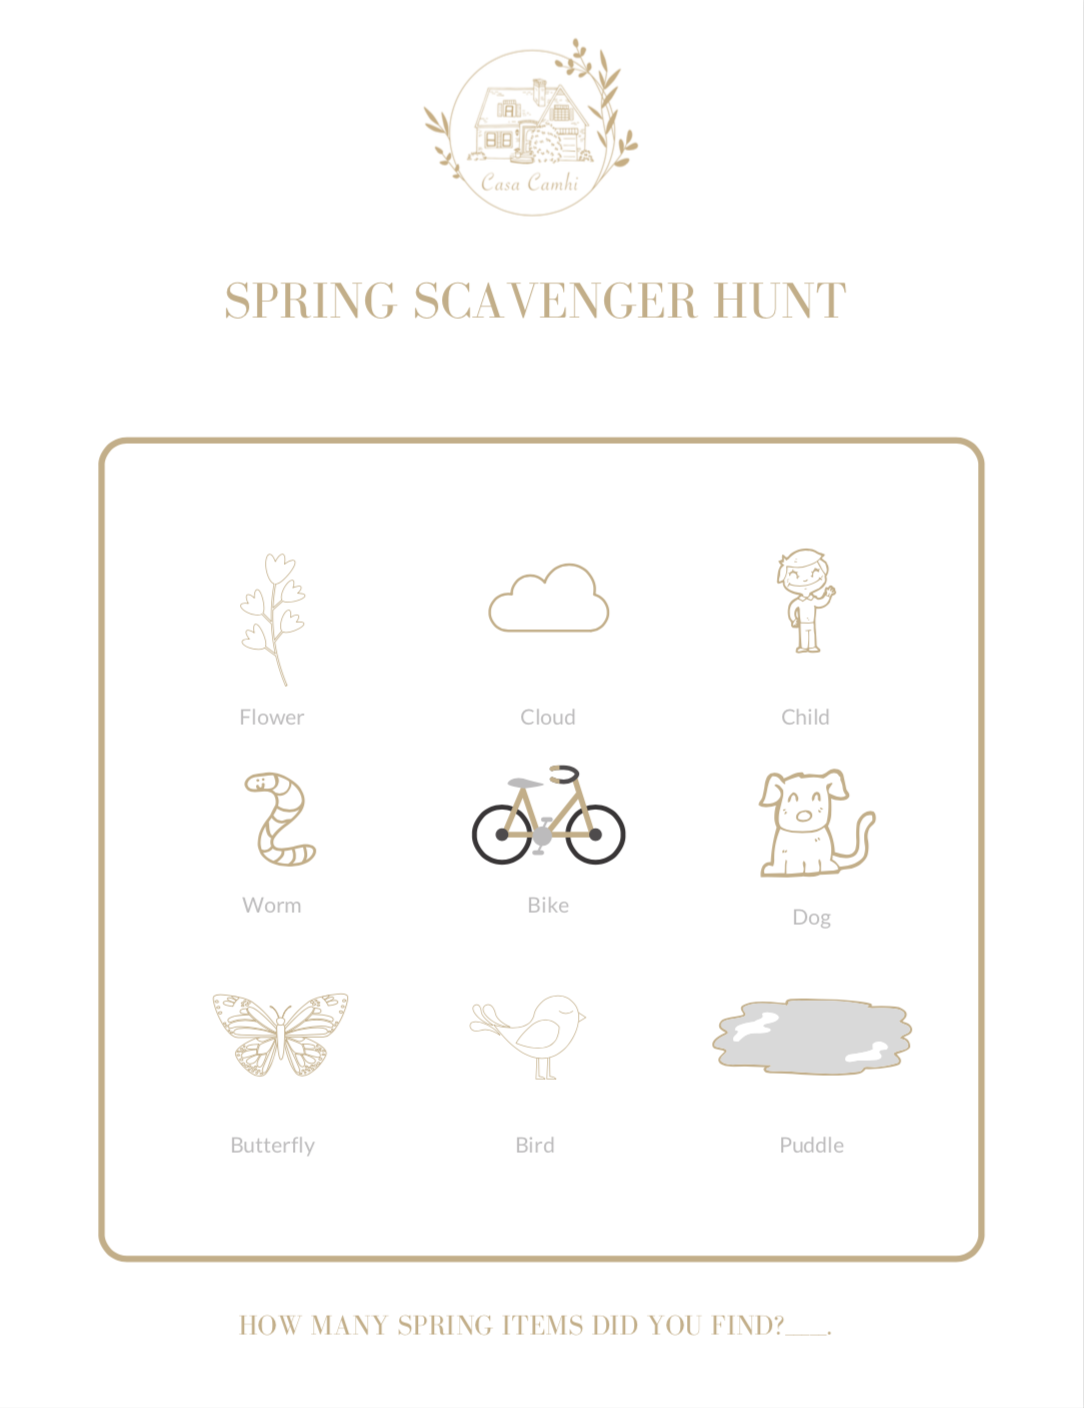 Download your own printable Scavenger Hunt page  here .